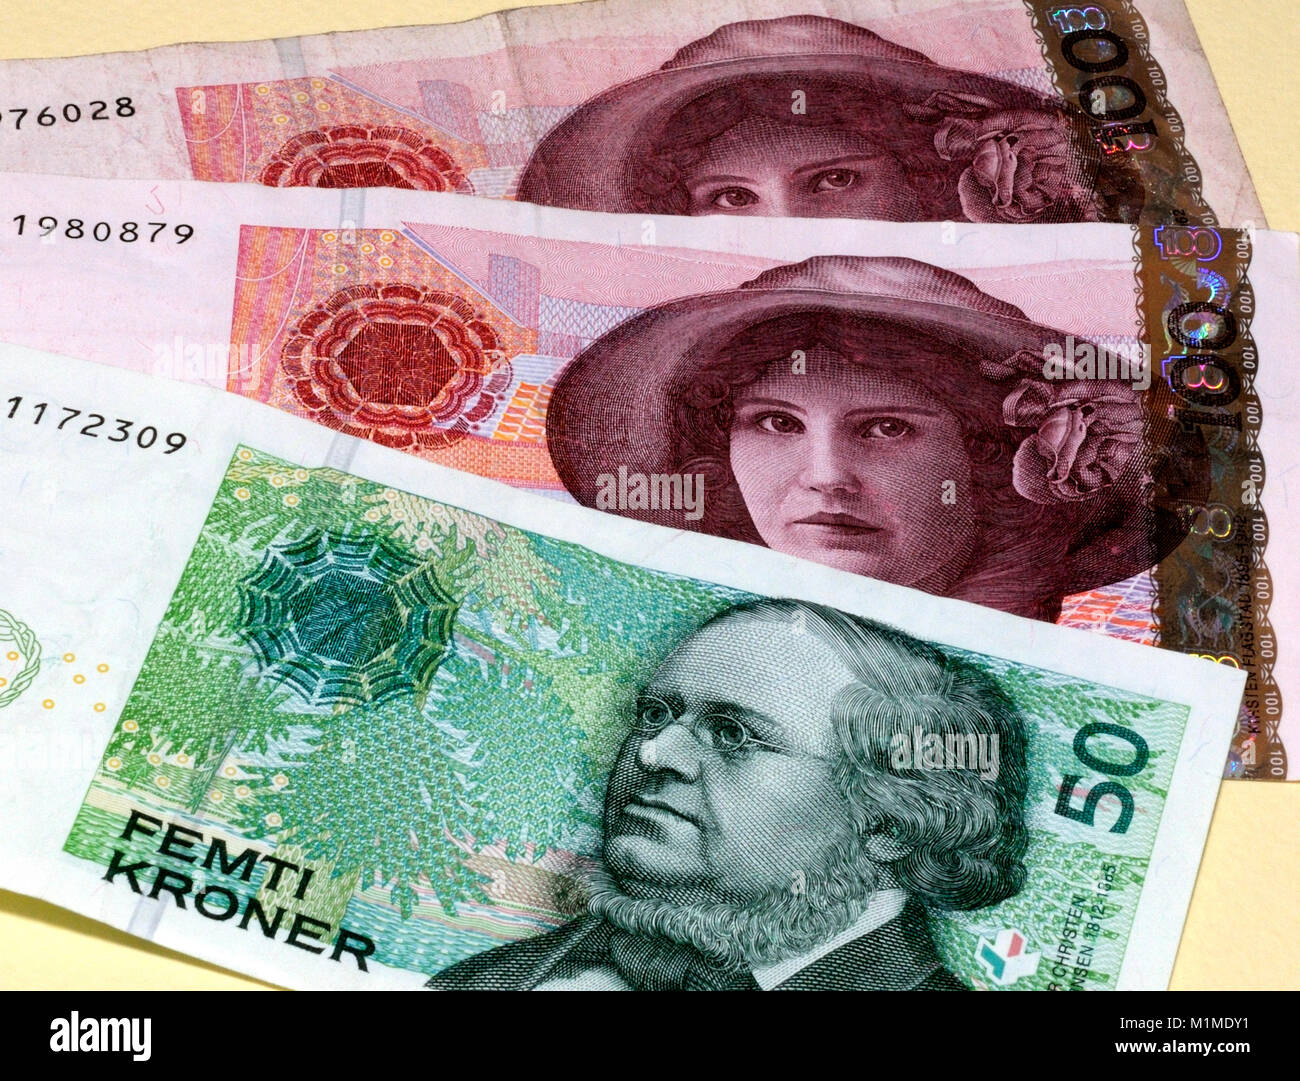 Norwegian Krone Currency Bank Note - Stock Image